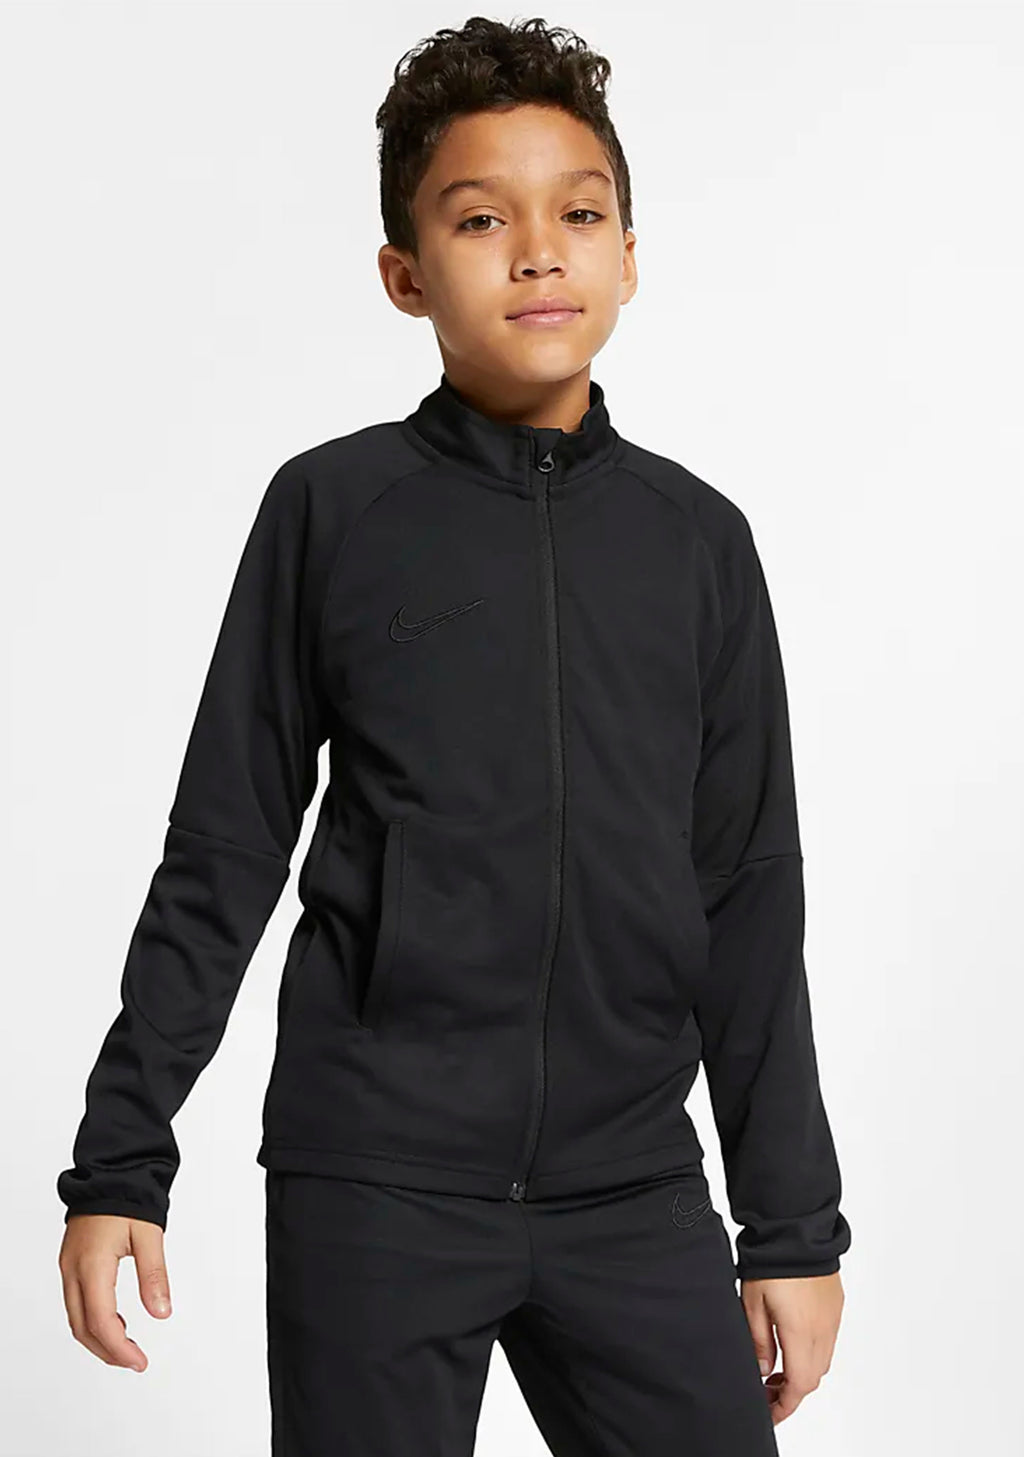 NIKE YOUTH DRI-FIT ACADEMY TRACKSUIT BLACK <BR> AO0794 011